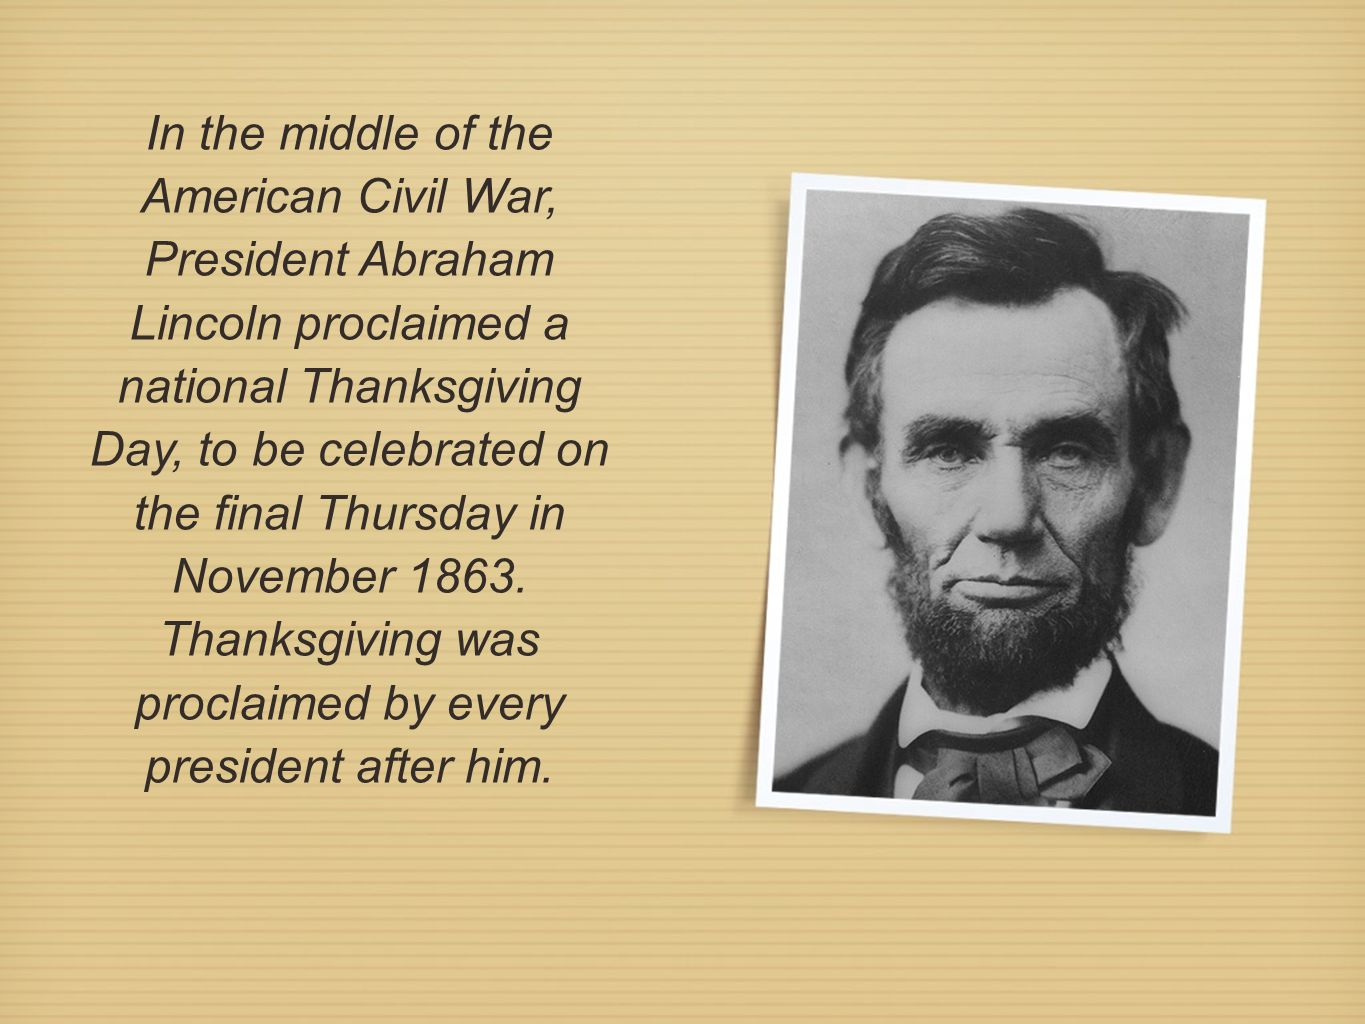 In the middle of the American Civil War, President Abraham Lincoln proclaimed a national Thanksgiving Day, to be celebrated on the final Thursday in November 1863.